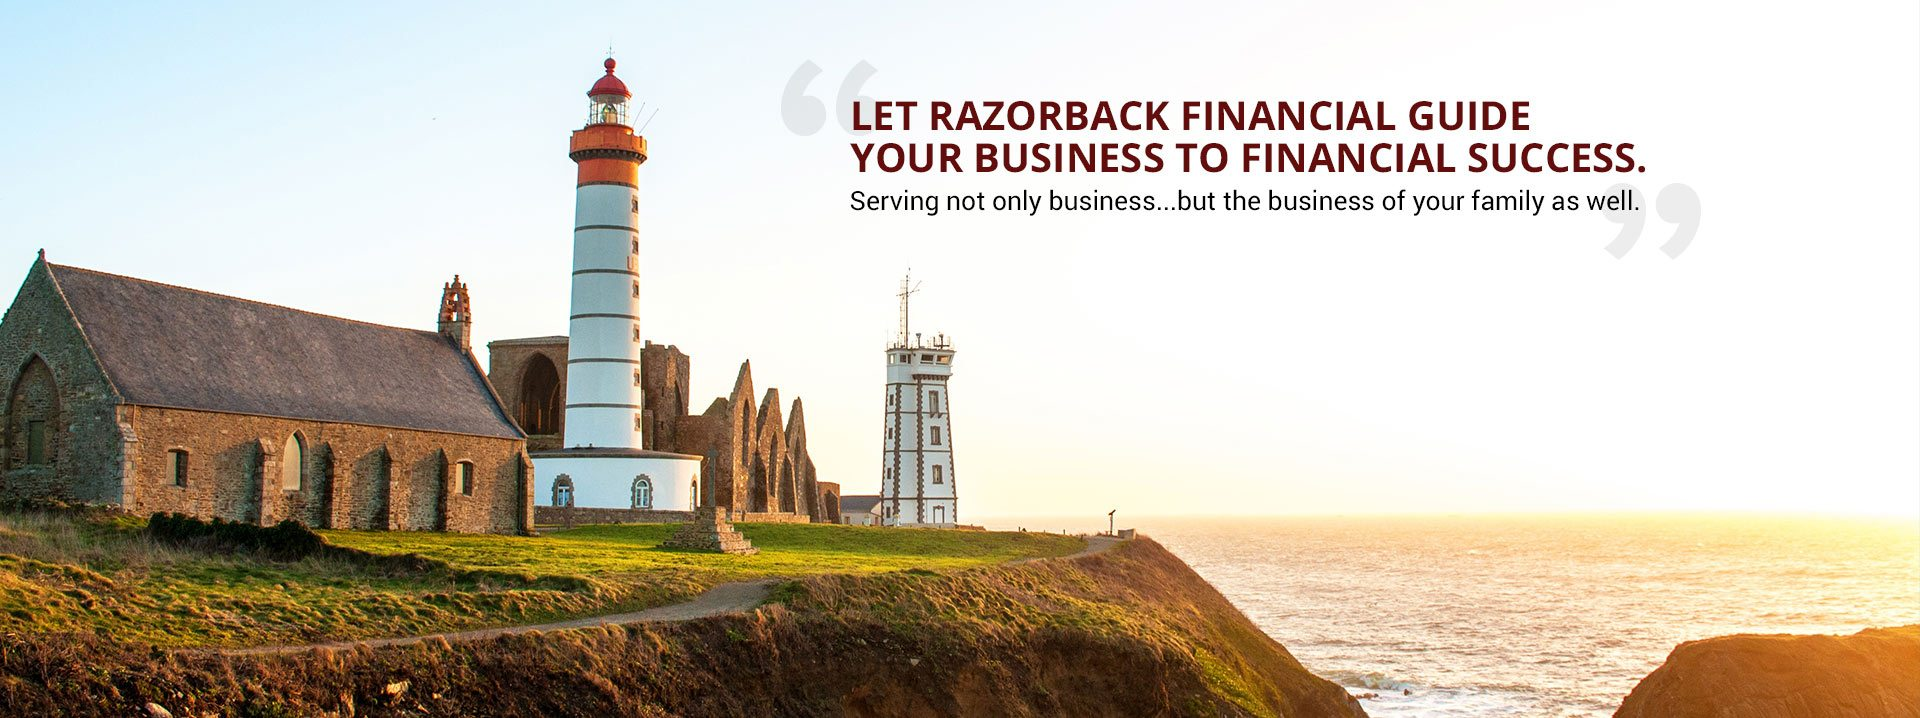 Let Razorback Financial Guide your business to financial success.